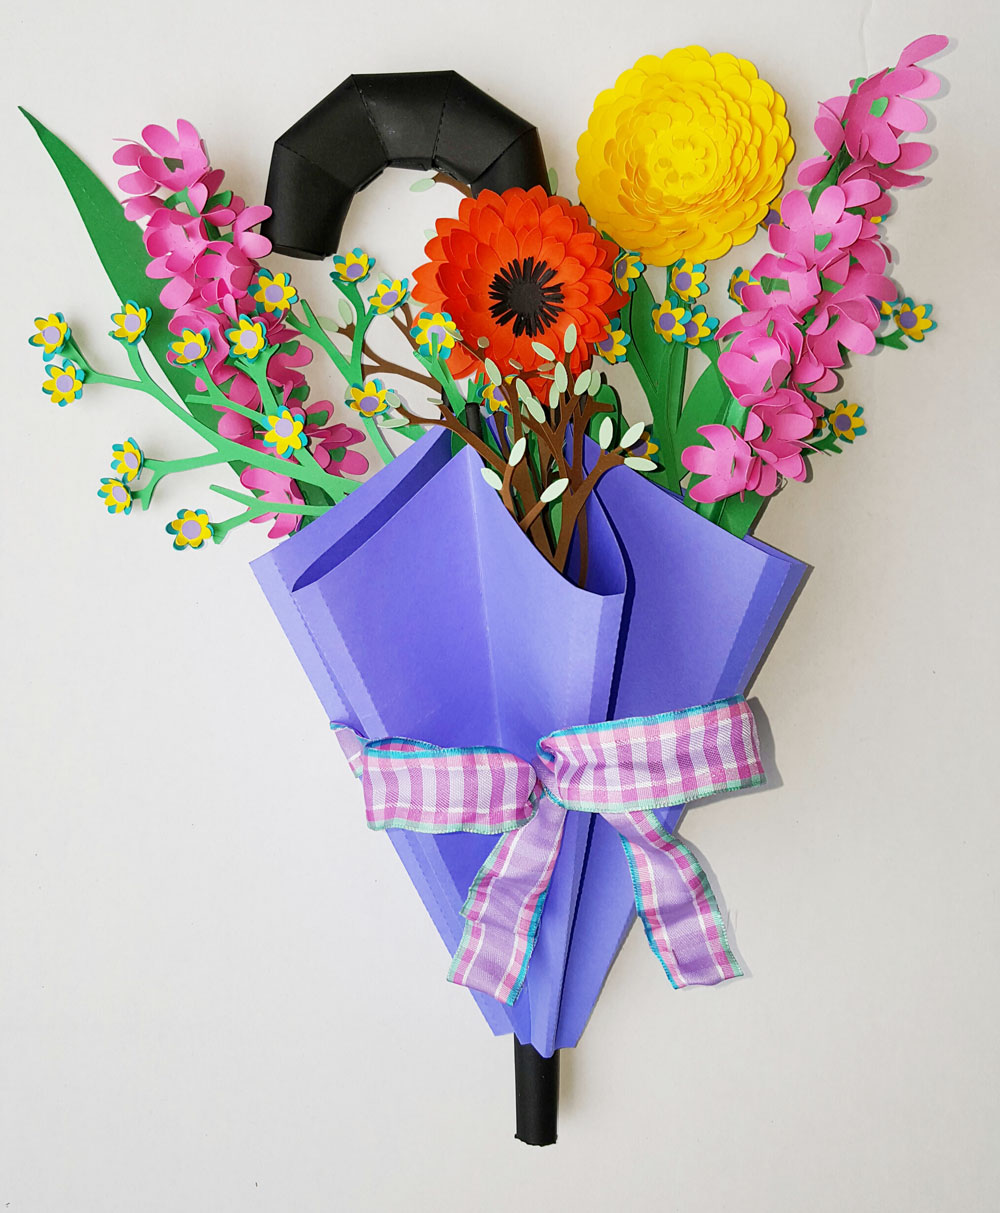 Paper Umbrella and Flowers Garden Wreath